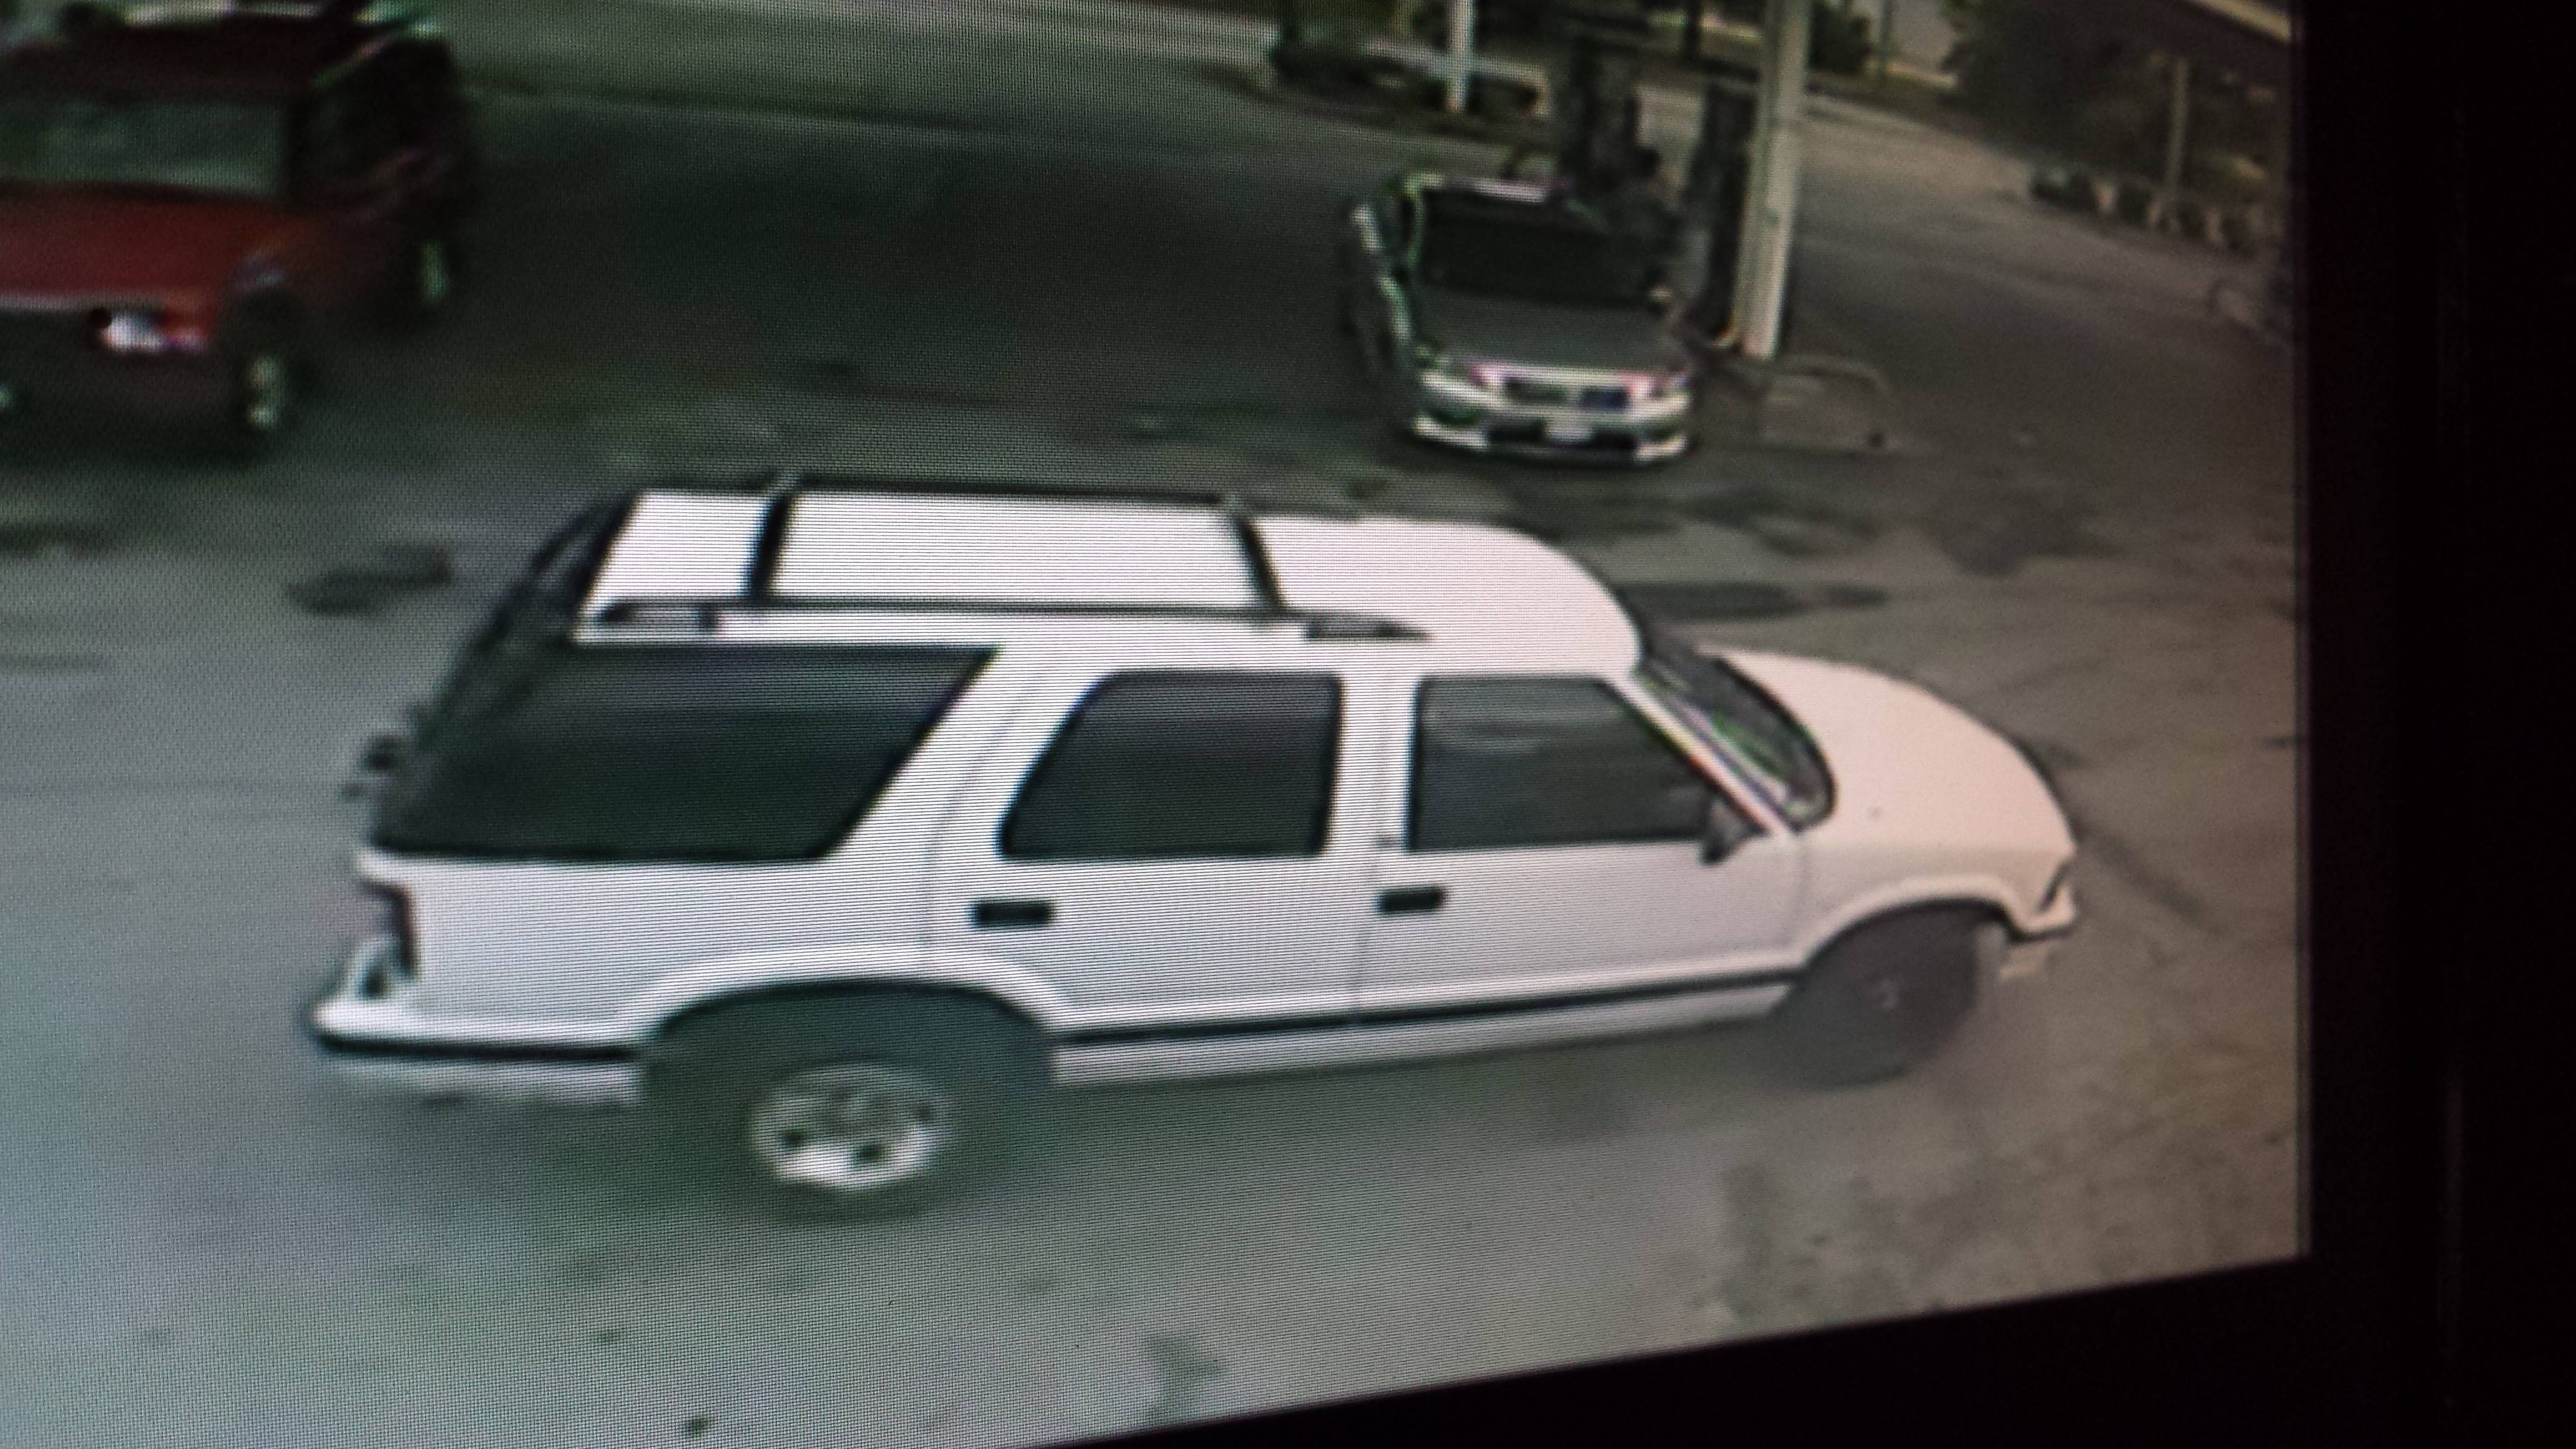 The man who attacked a woman near Libertyville on Sunday may have driven this vehicle, police say.